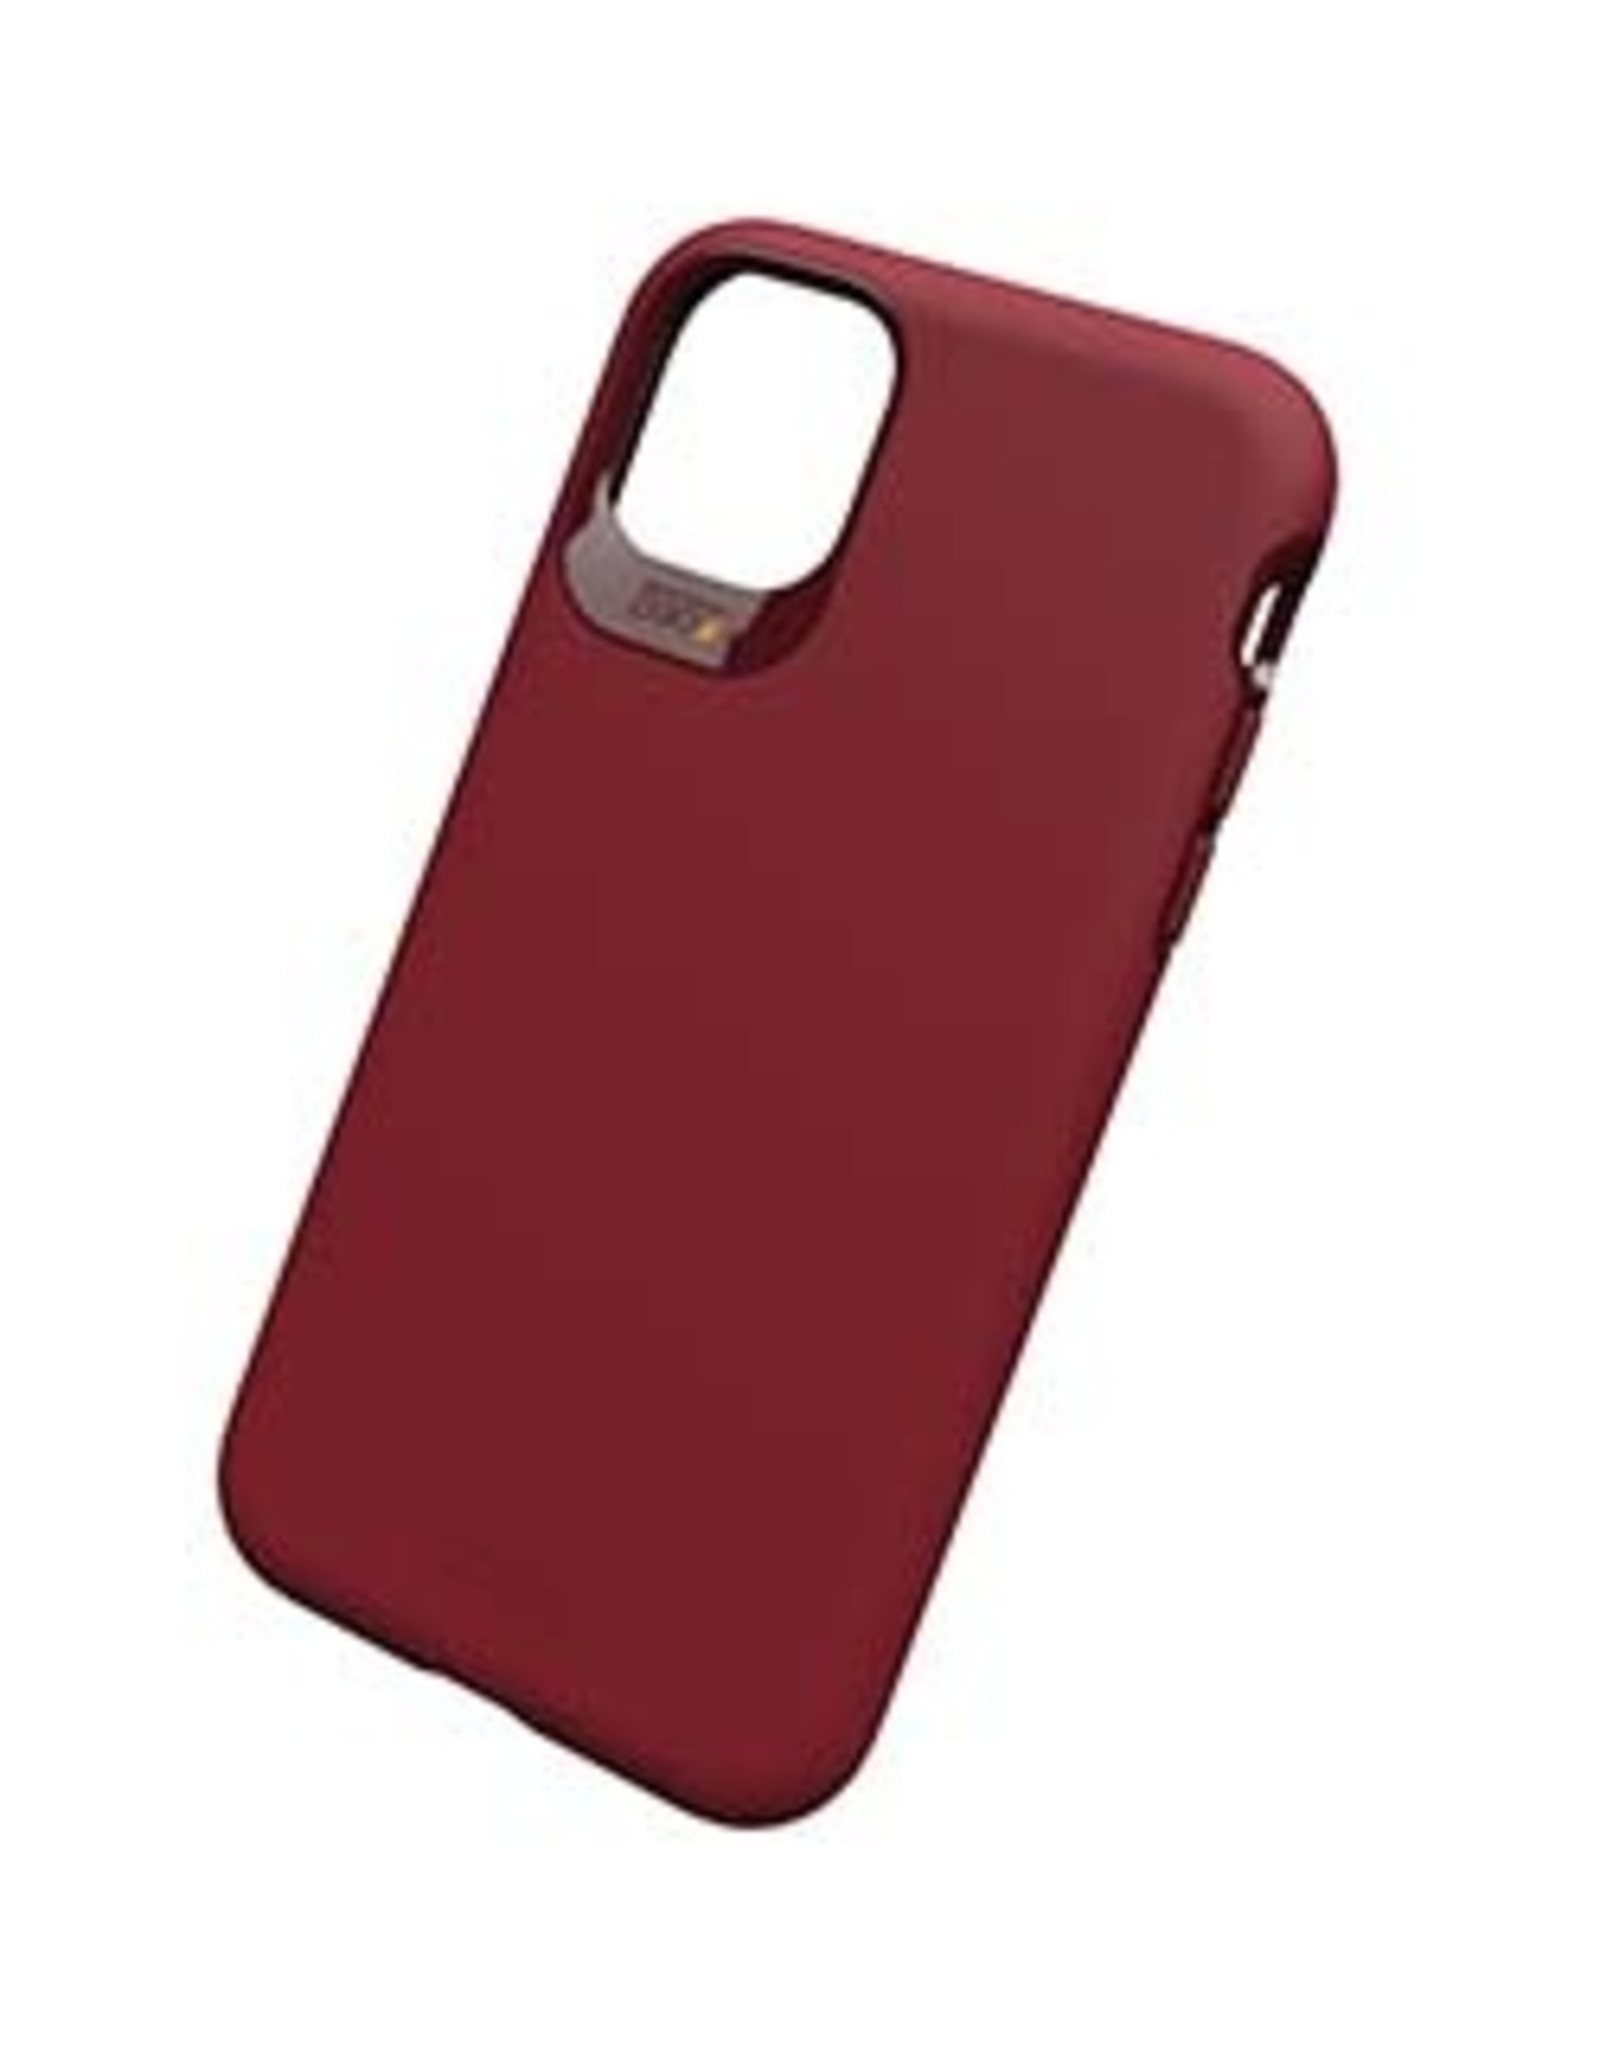 GEAR4 GEAR4 | iPhone 11 D3O Red (Wine) Holborn Case 15-04824